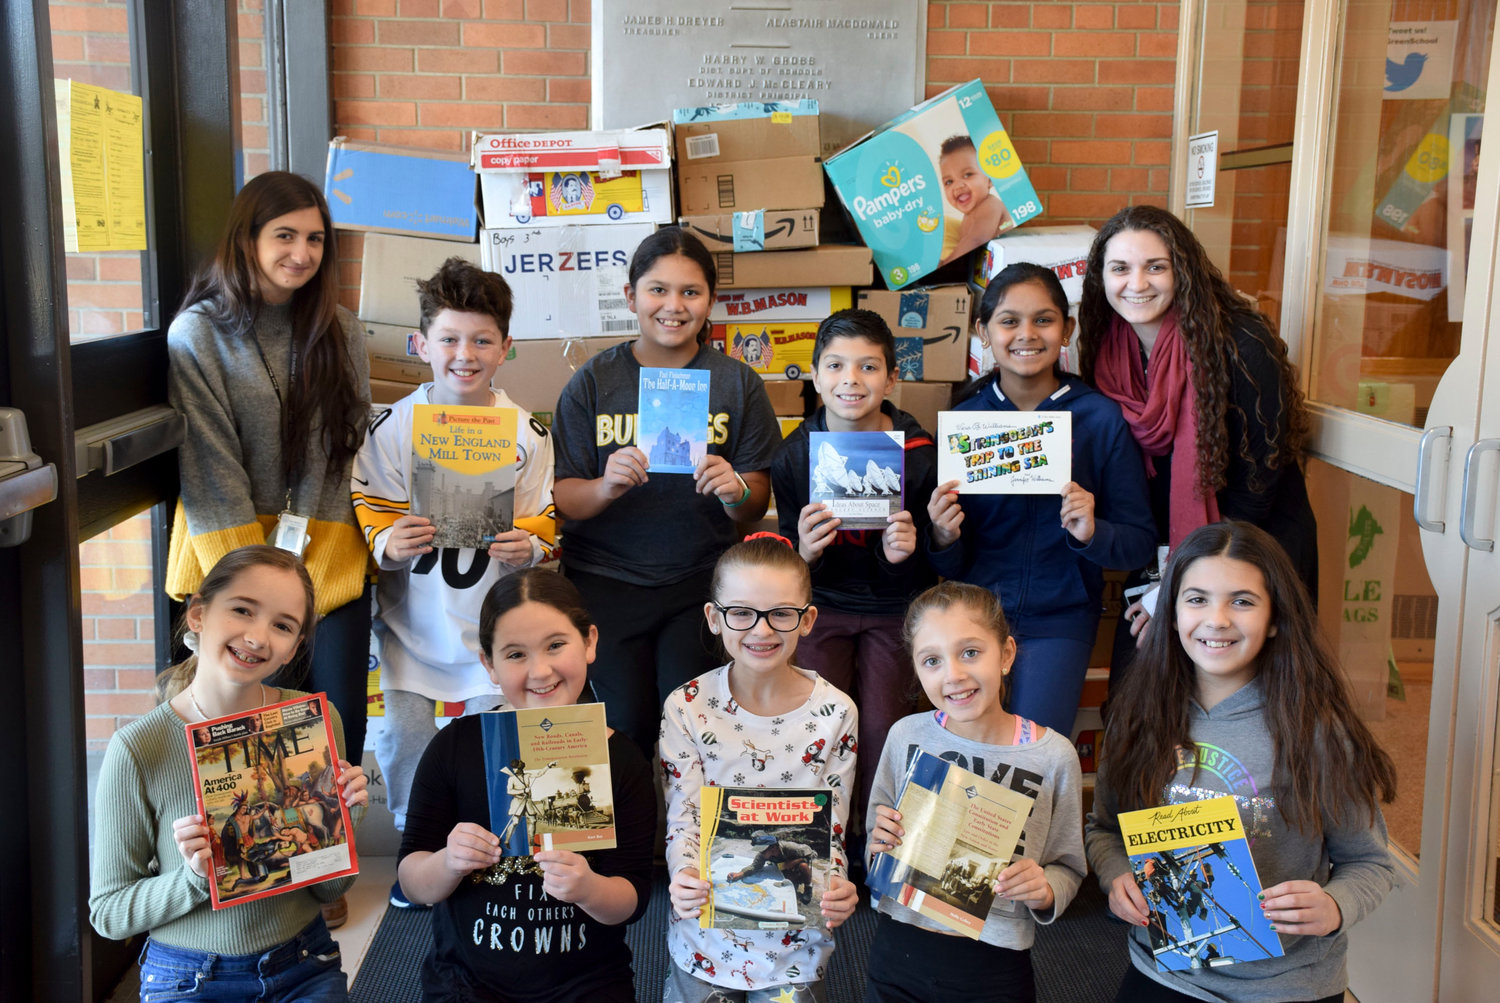 The K-Kids service organization board members, pictured with K-Kids advisers Christina Chrish (left) and Jacqueline Langro, collected 19 boxes of books to be donated to the Book Fairies for children in the community.